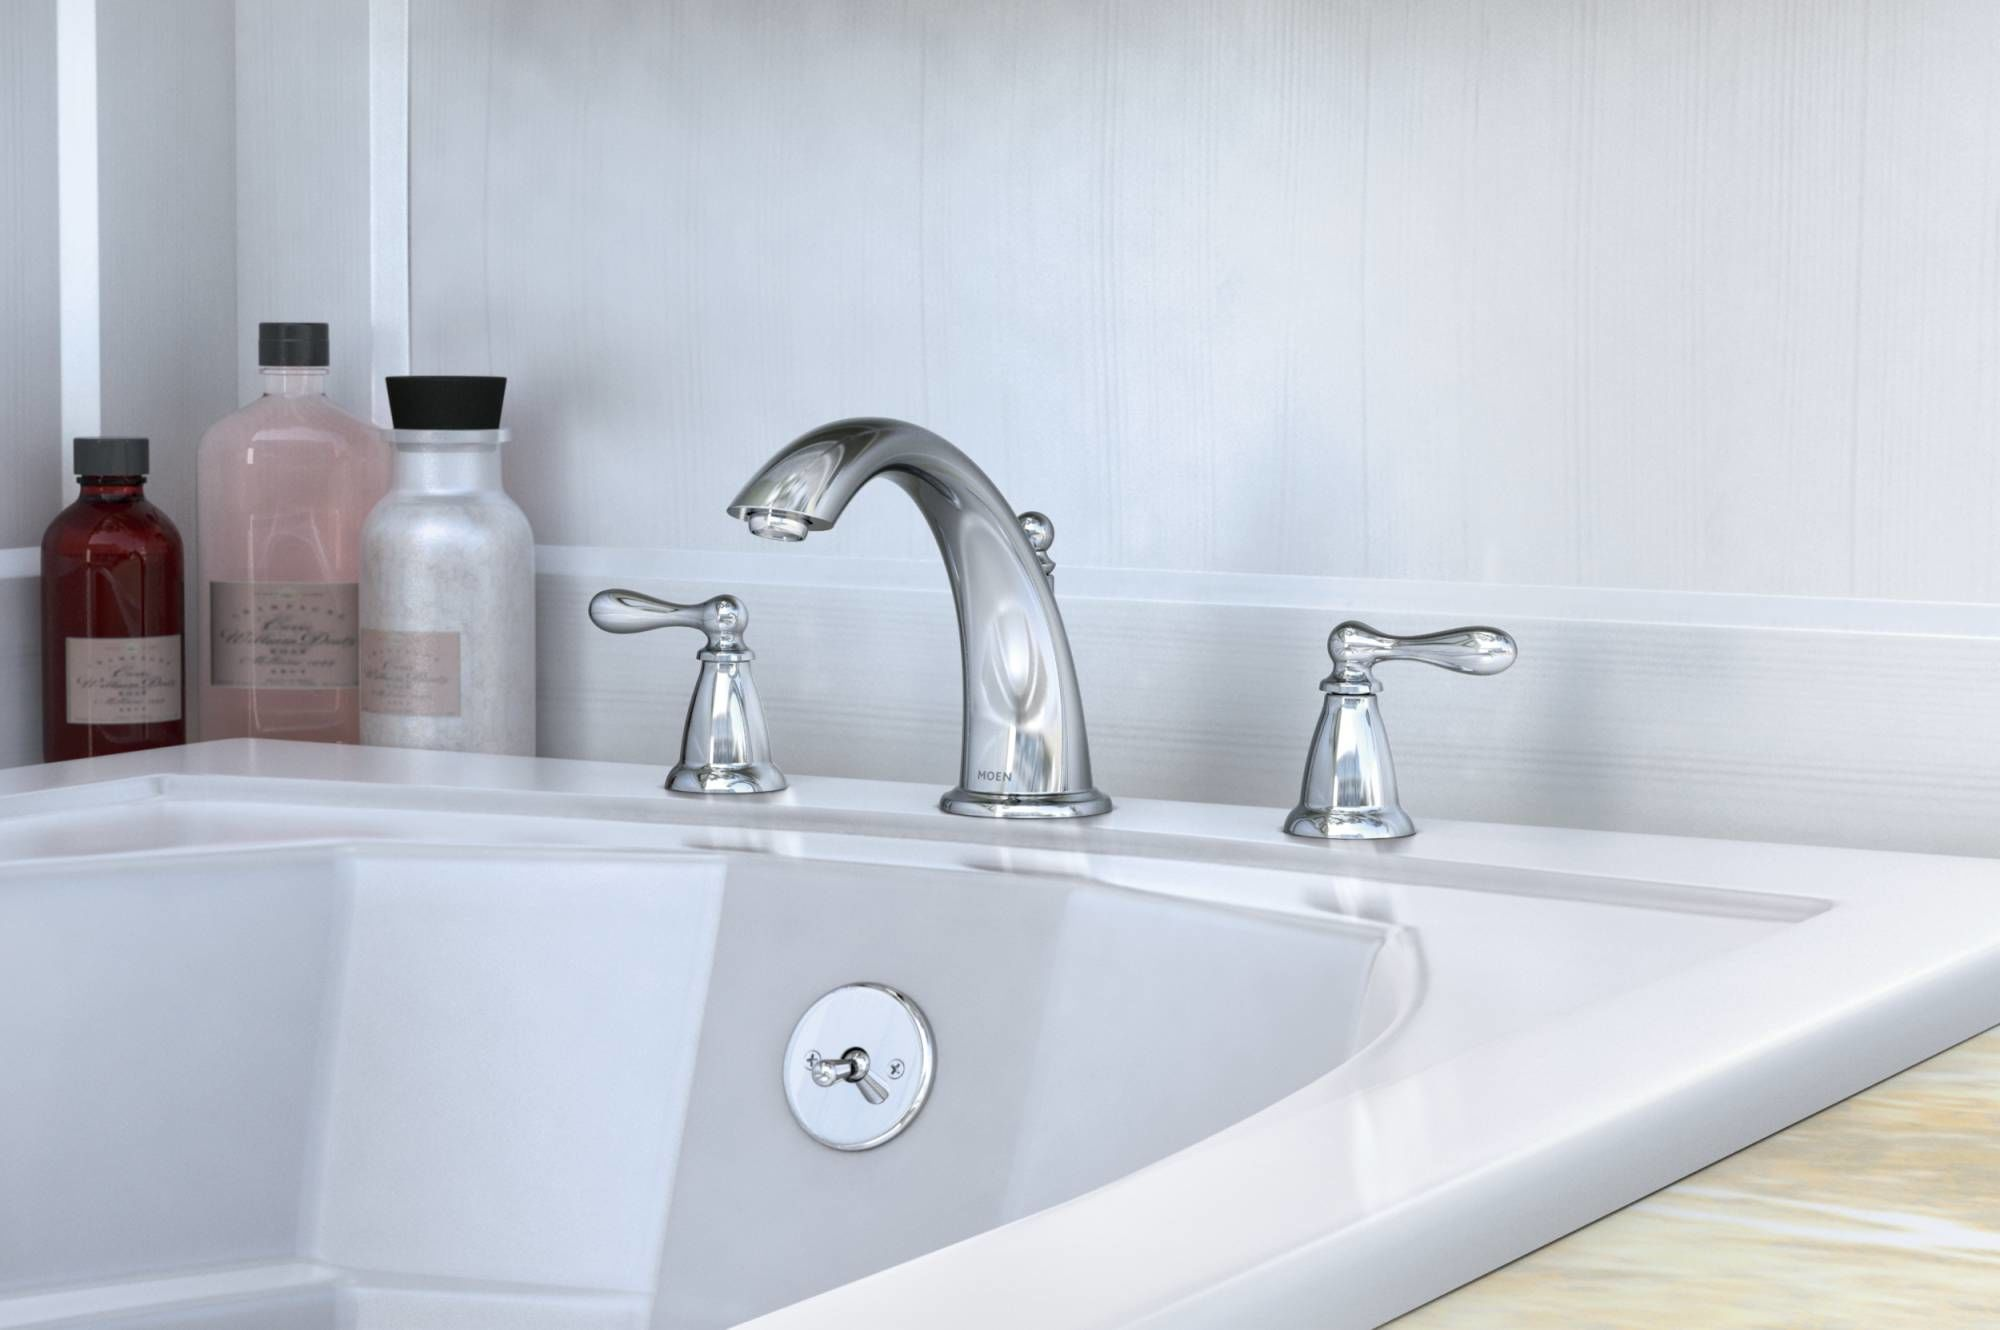 Moen 86440 Chrome Deck Mounted Roman Tub Faucet Trim from the ...